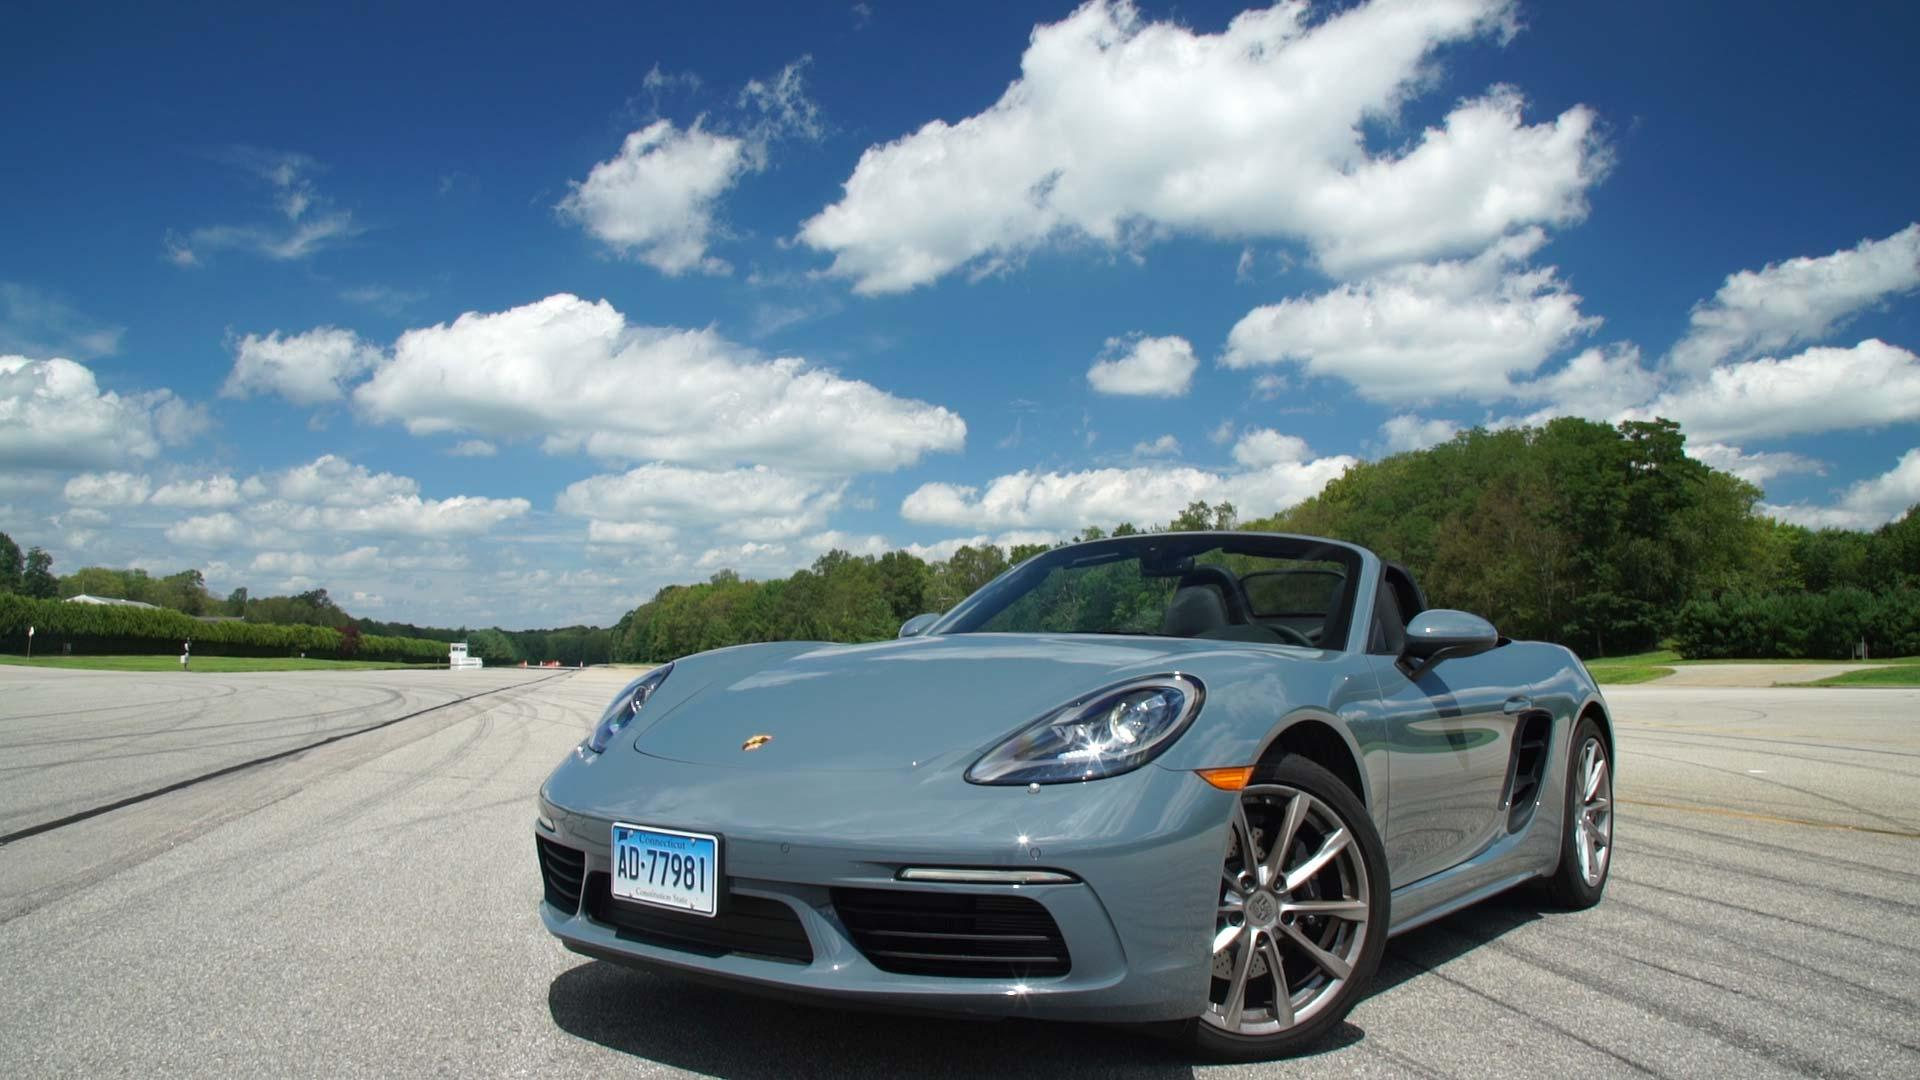 2017 porsche 718 boxster review turbo boosted brilliance